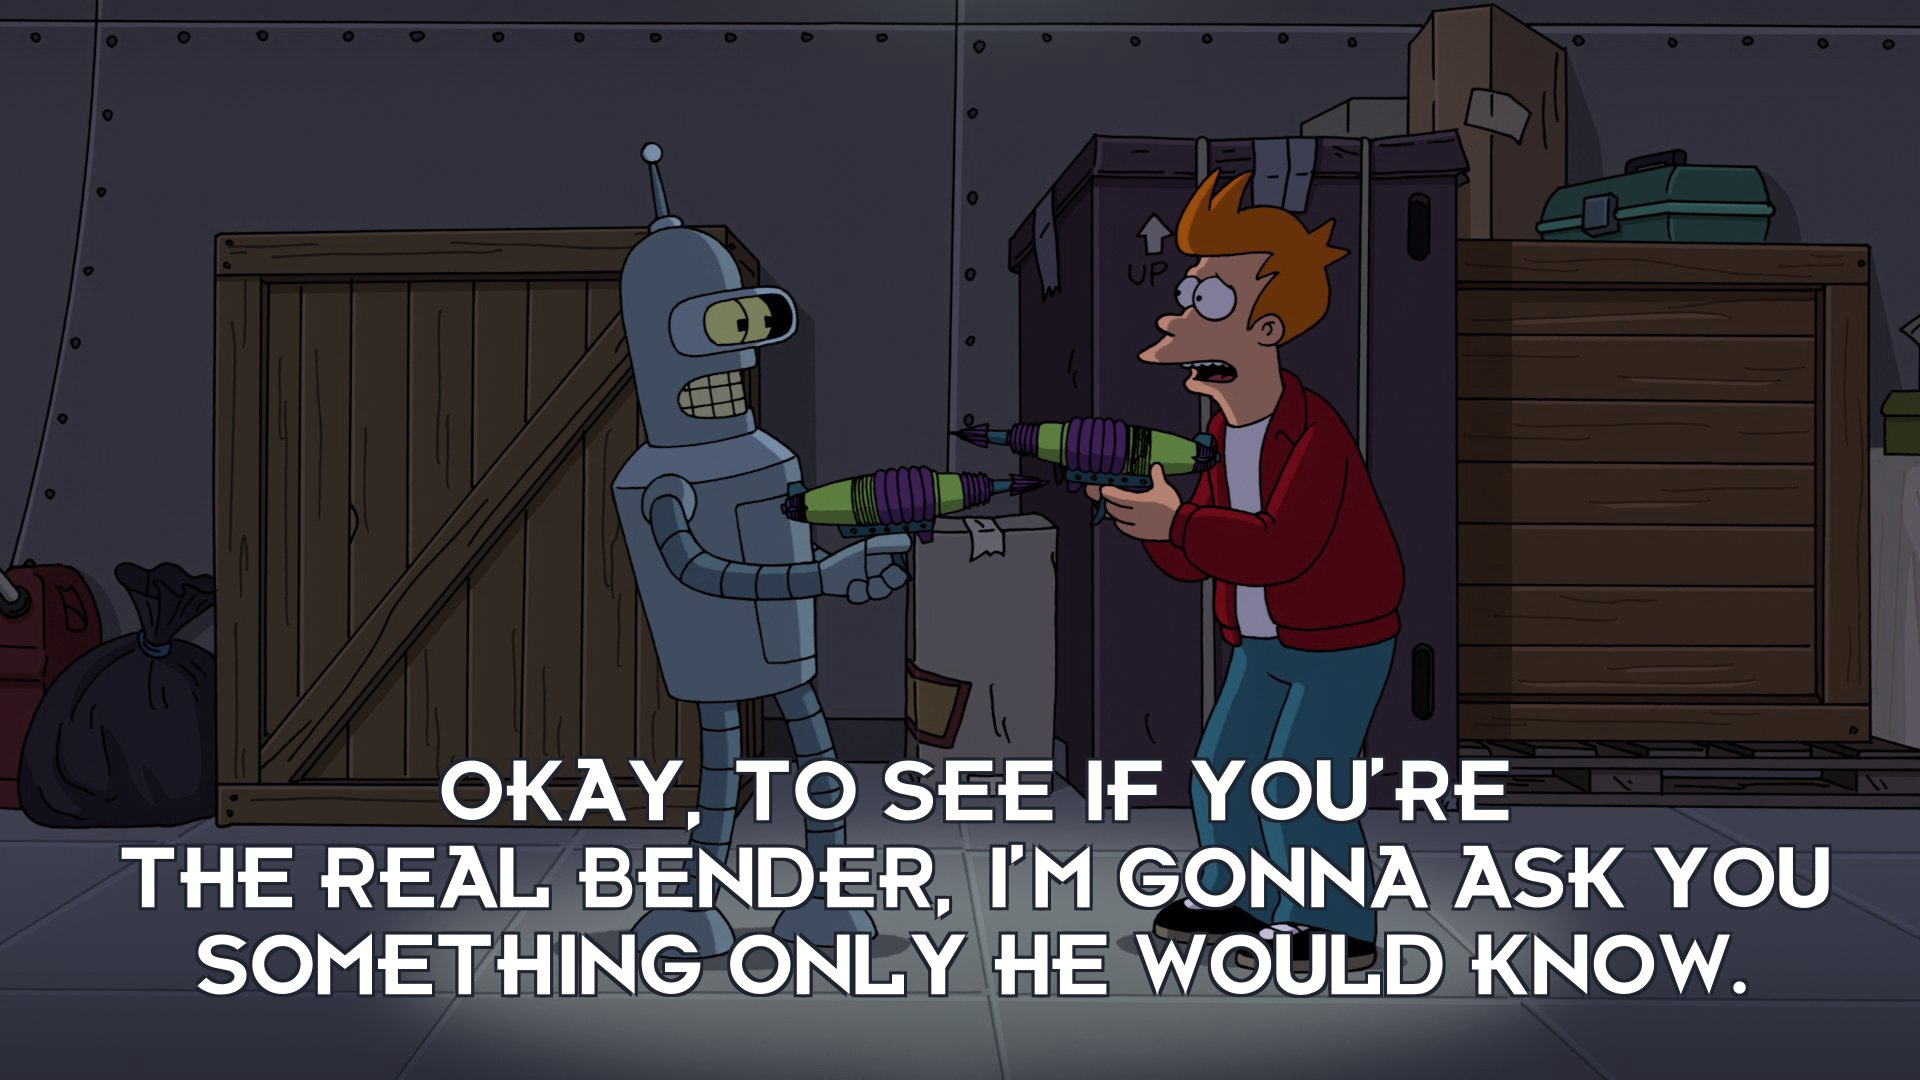 Philip J Fry: Okay, to see if you're the real Bender, I'm gonna ask you something only he would know.